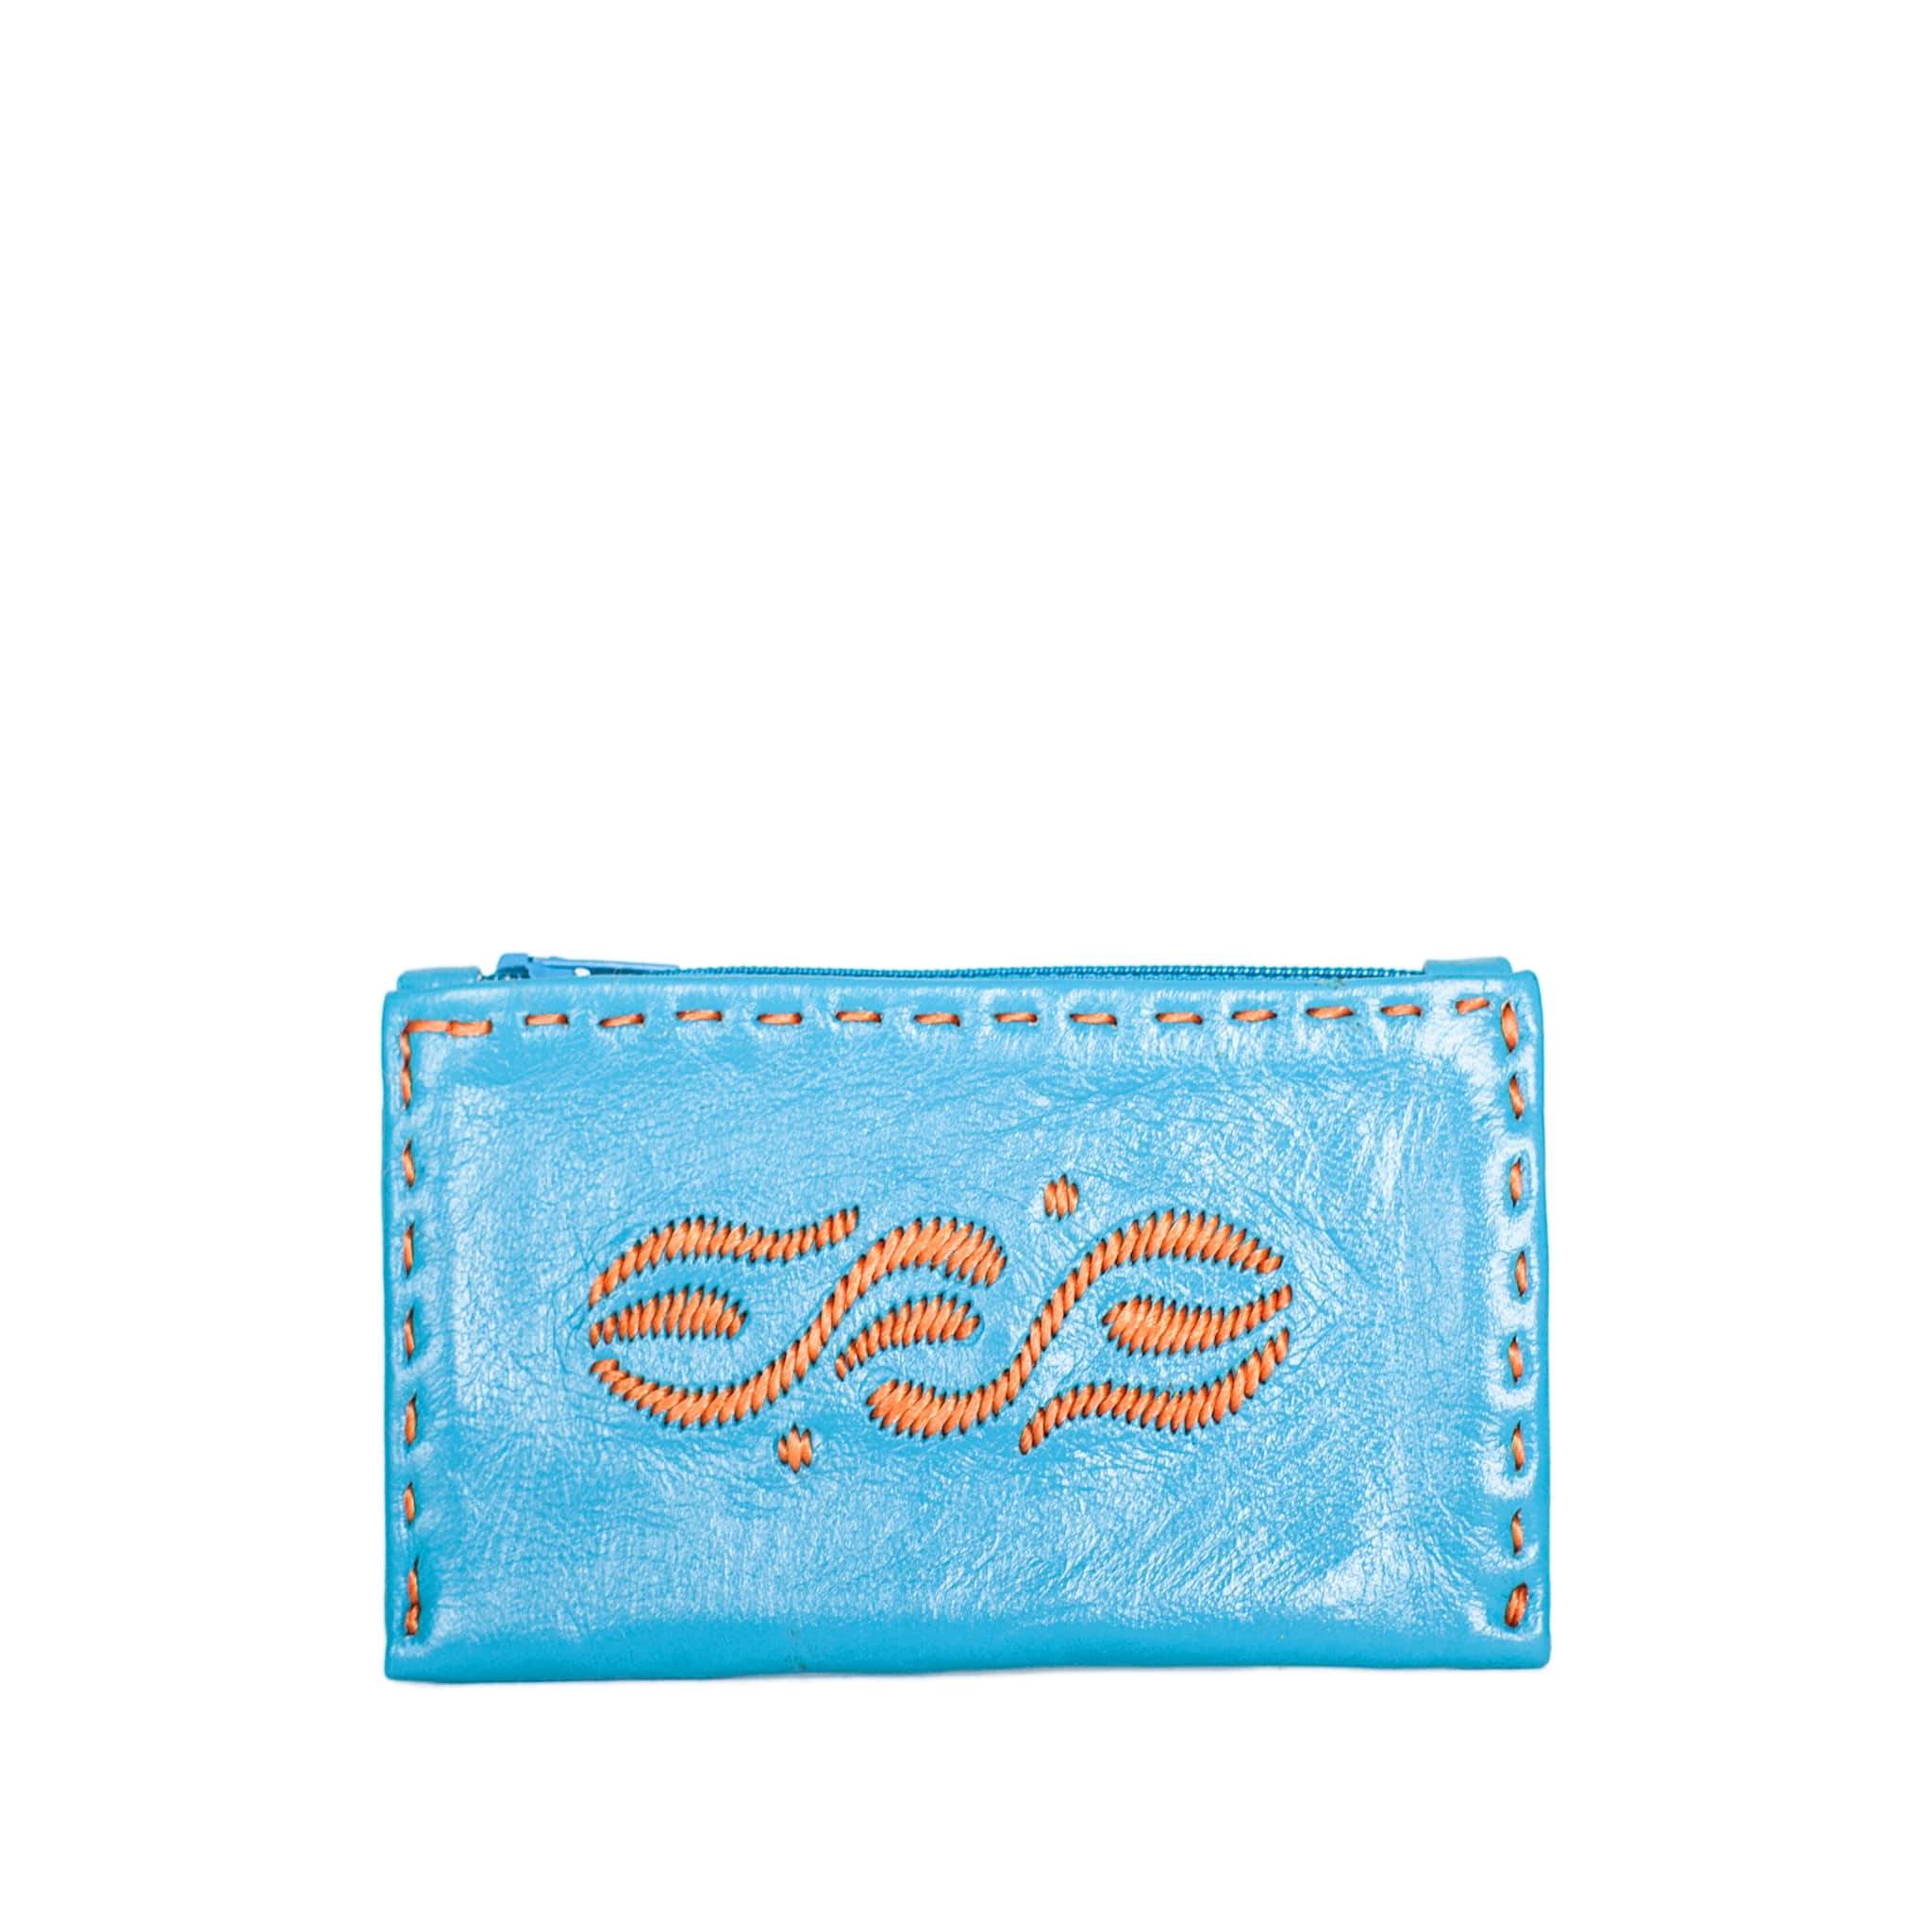 Embroidered Leather Coin Wallet in Turquoise, Orange from Abury